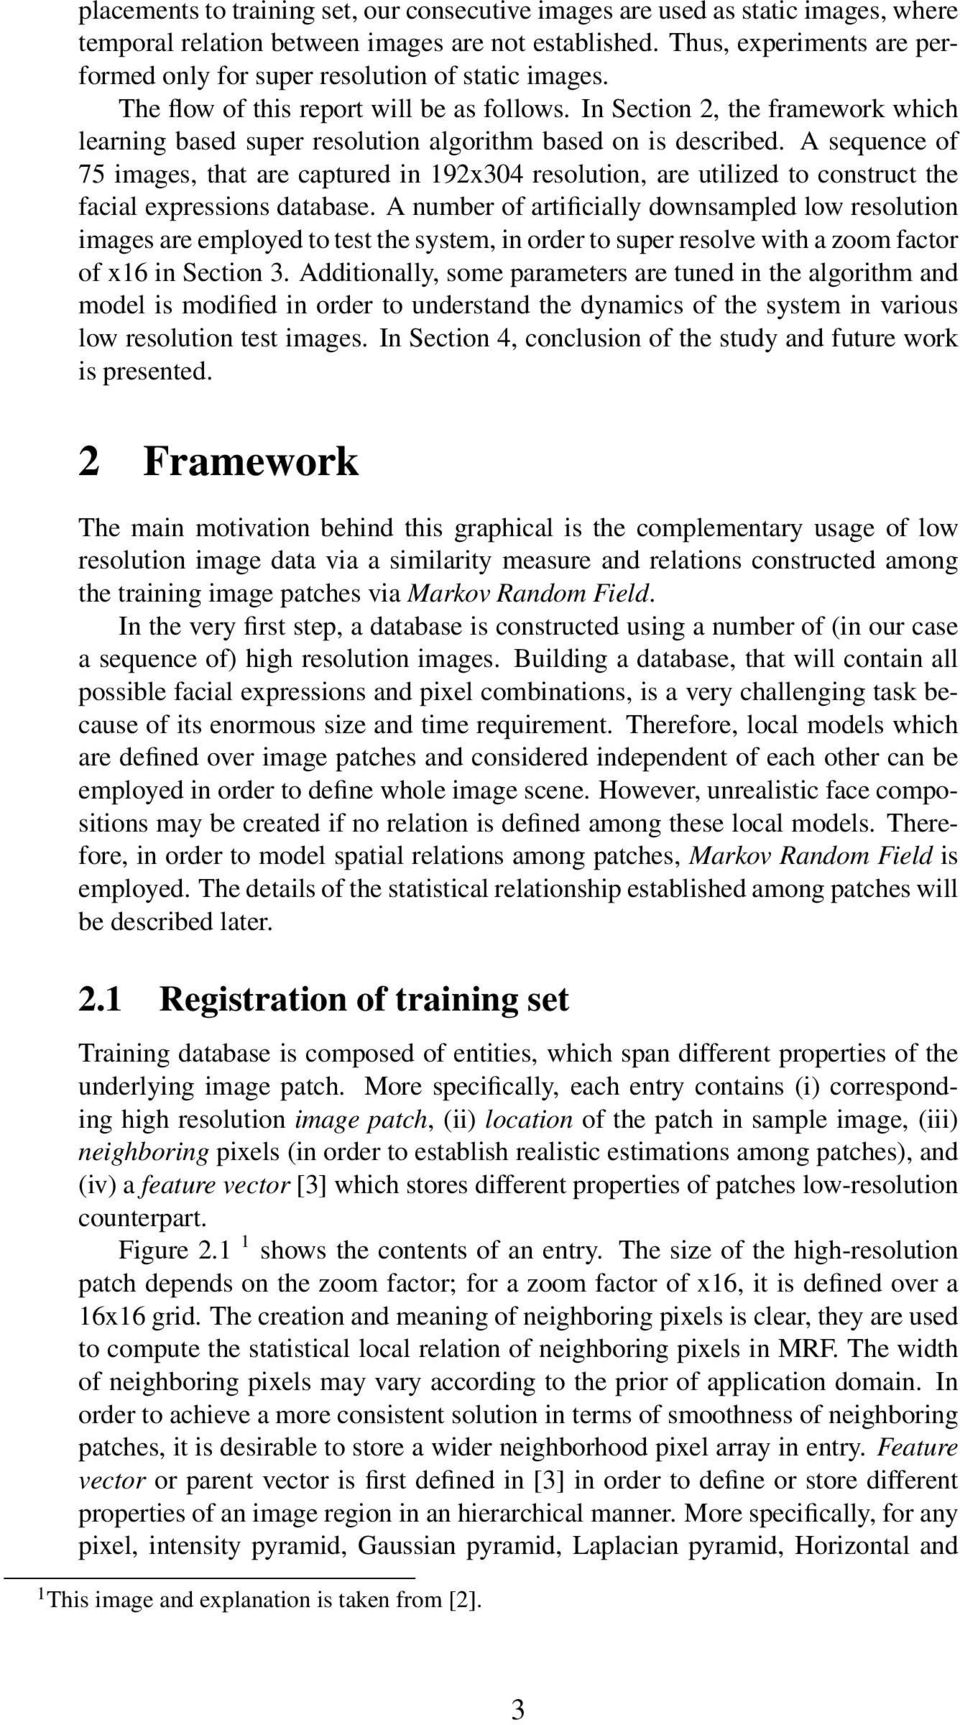 In Section 2, the framework which learning based super resolution algorithm based on is described.